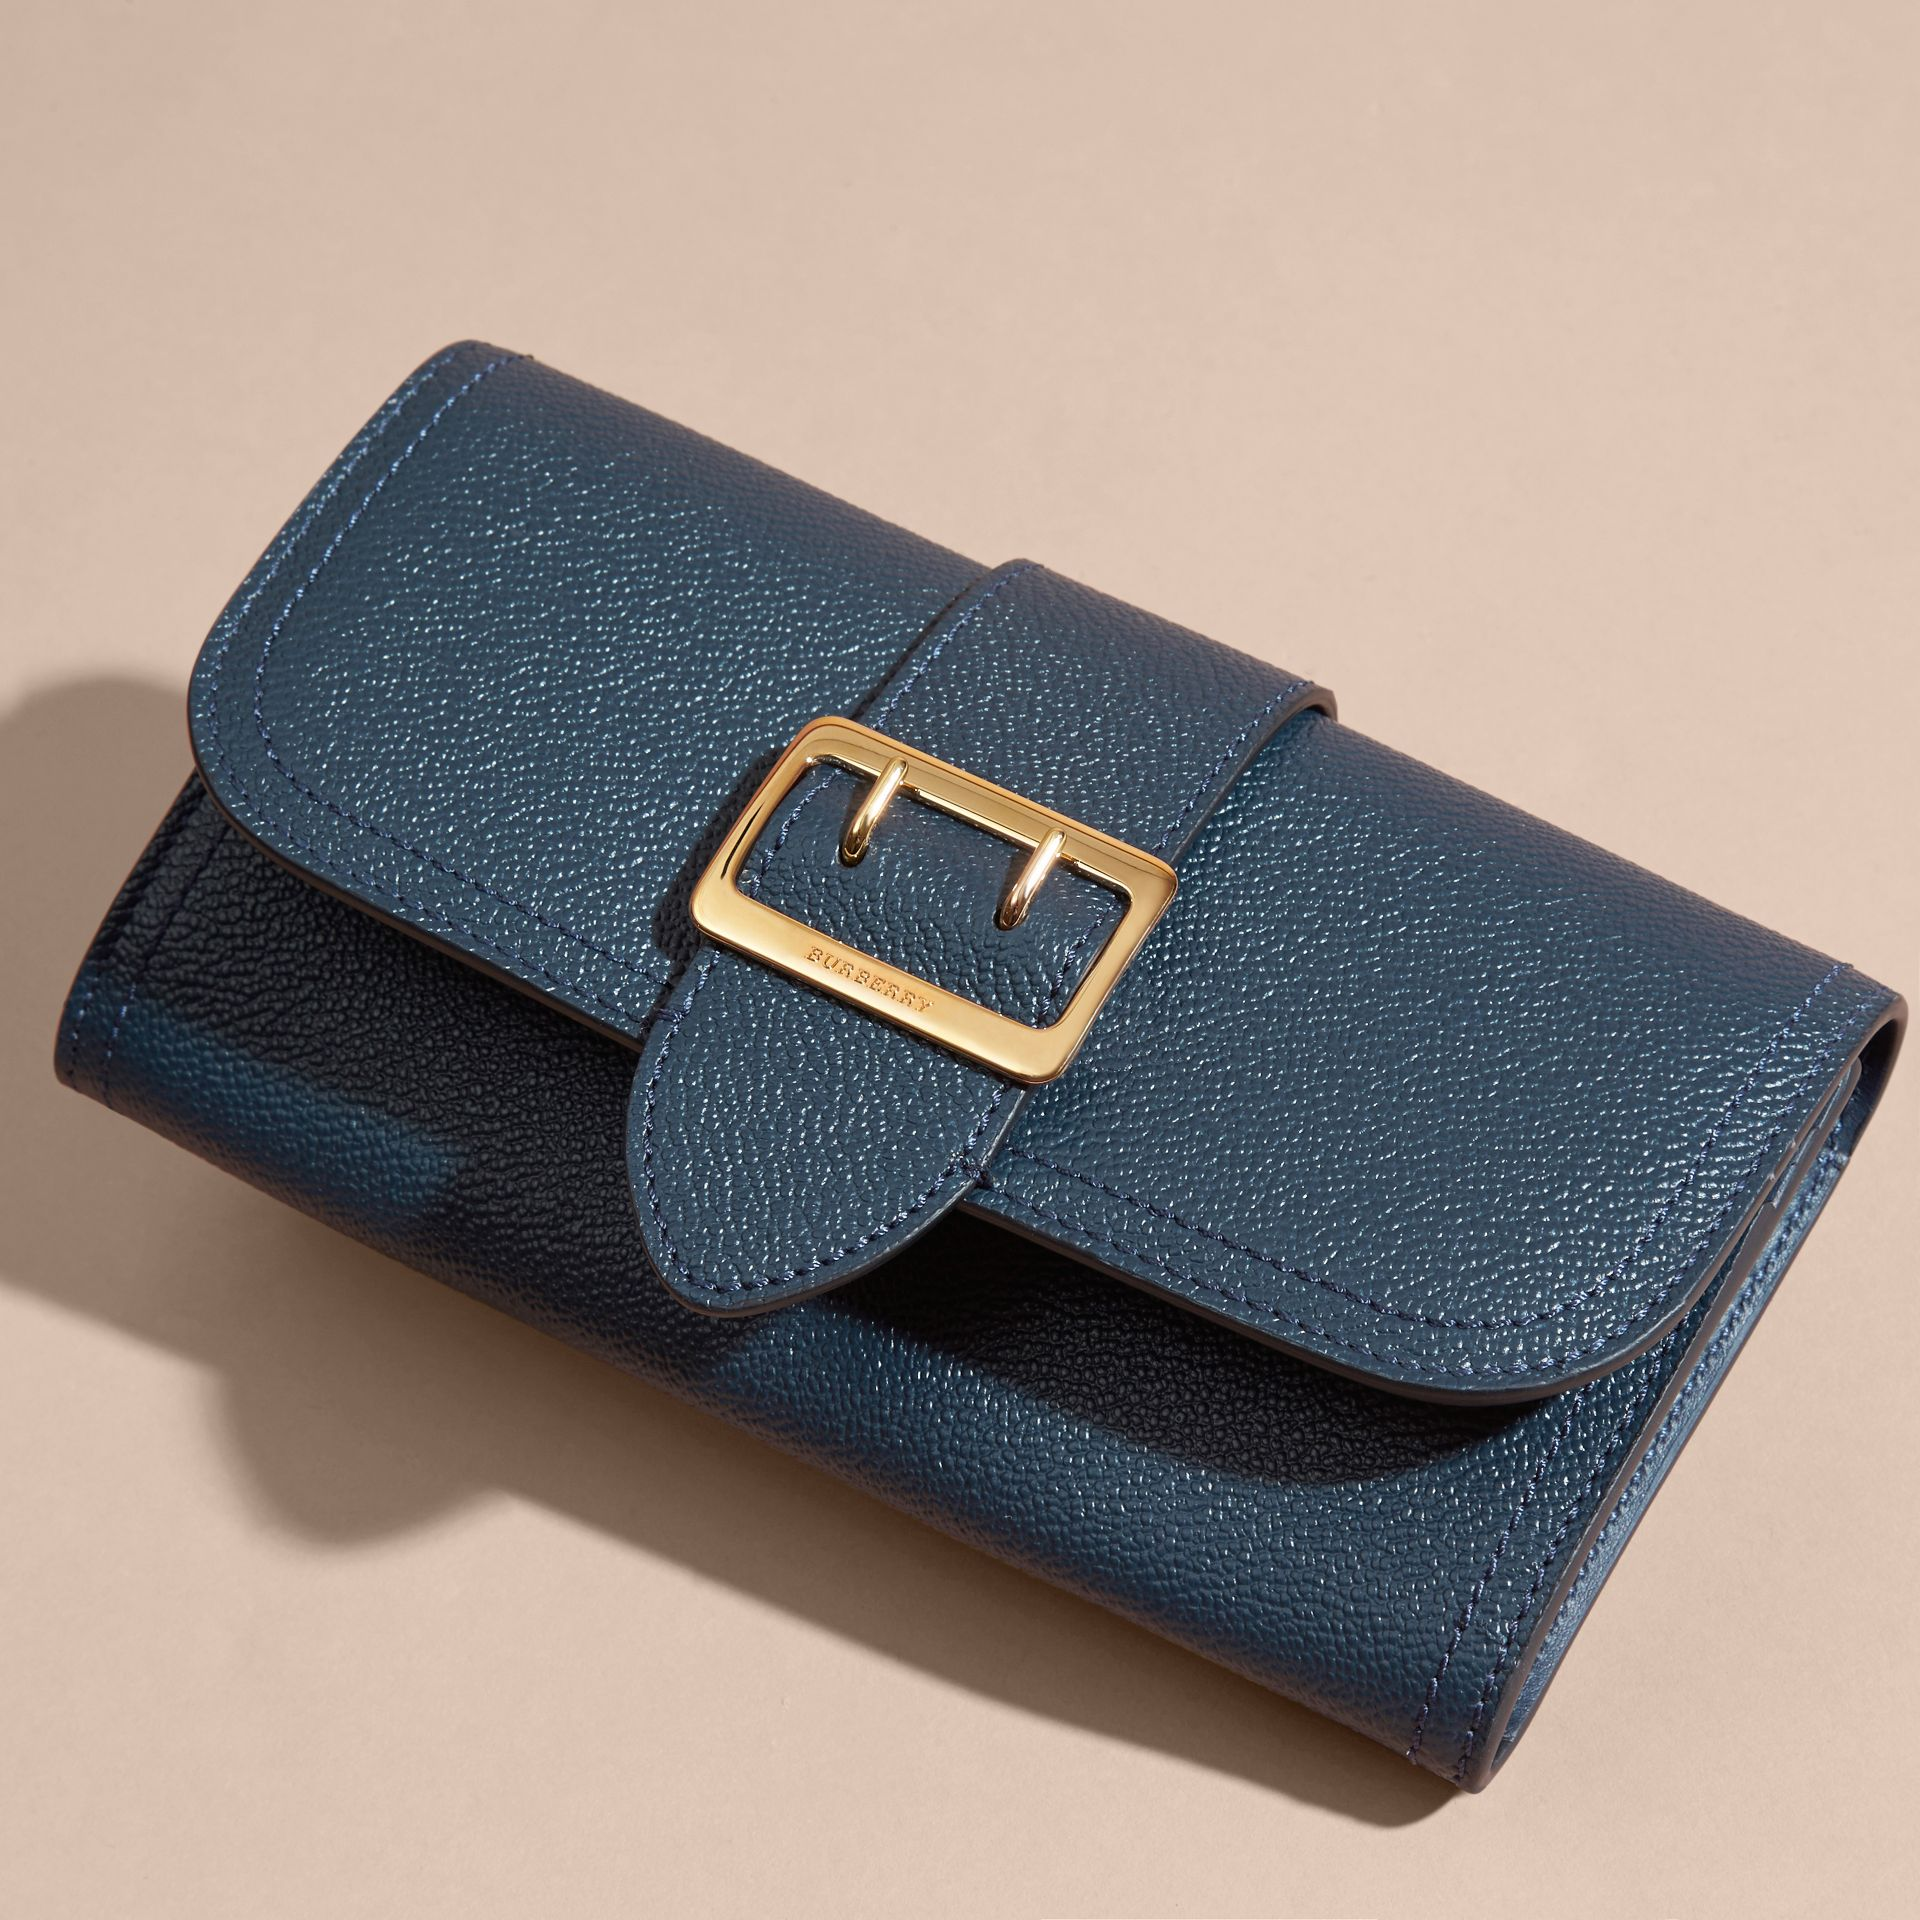 Textured Leather Continental Wallet in Blue Carbon - Women | Burberry - gallery image 6